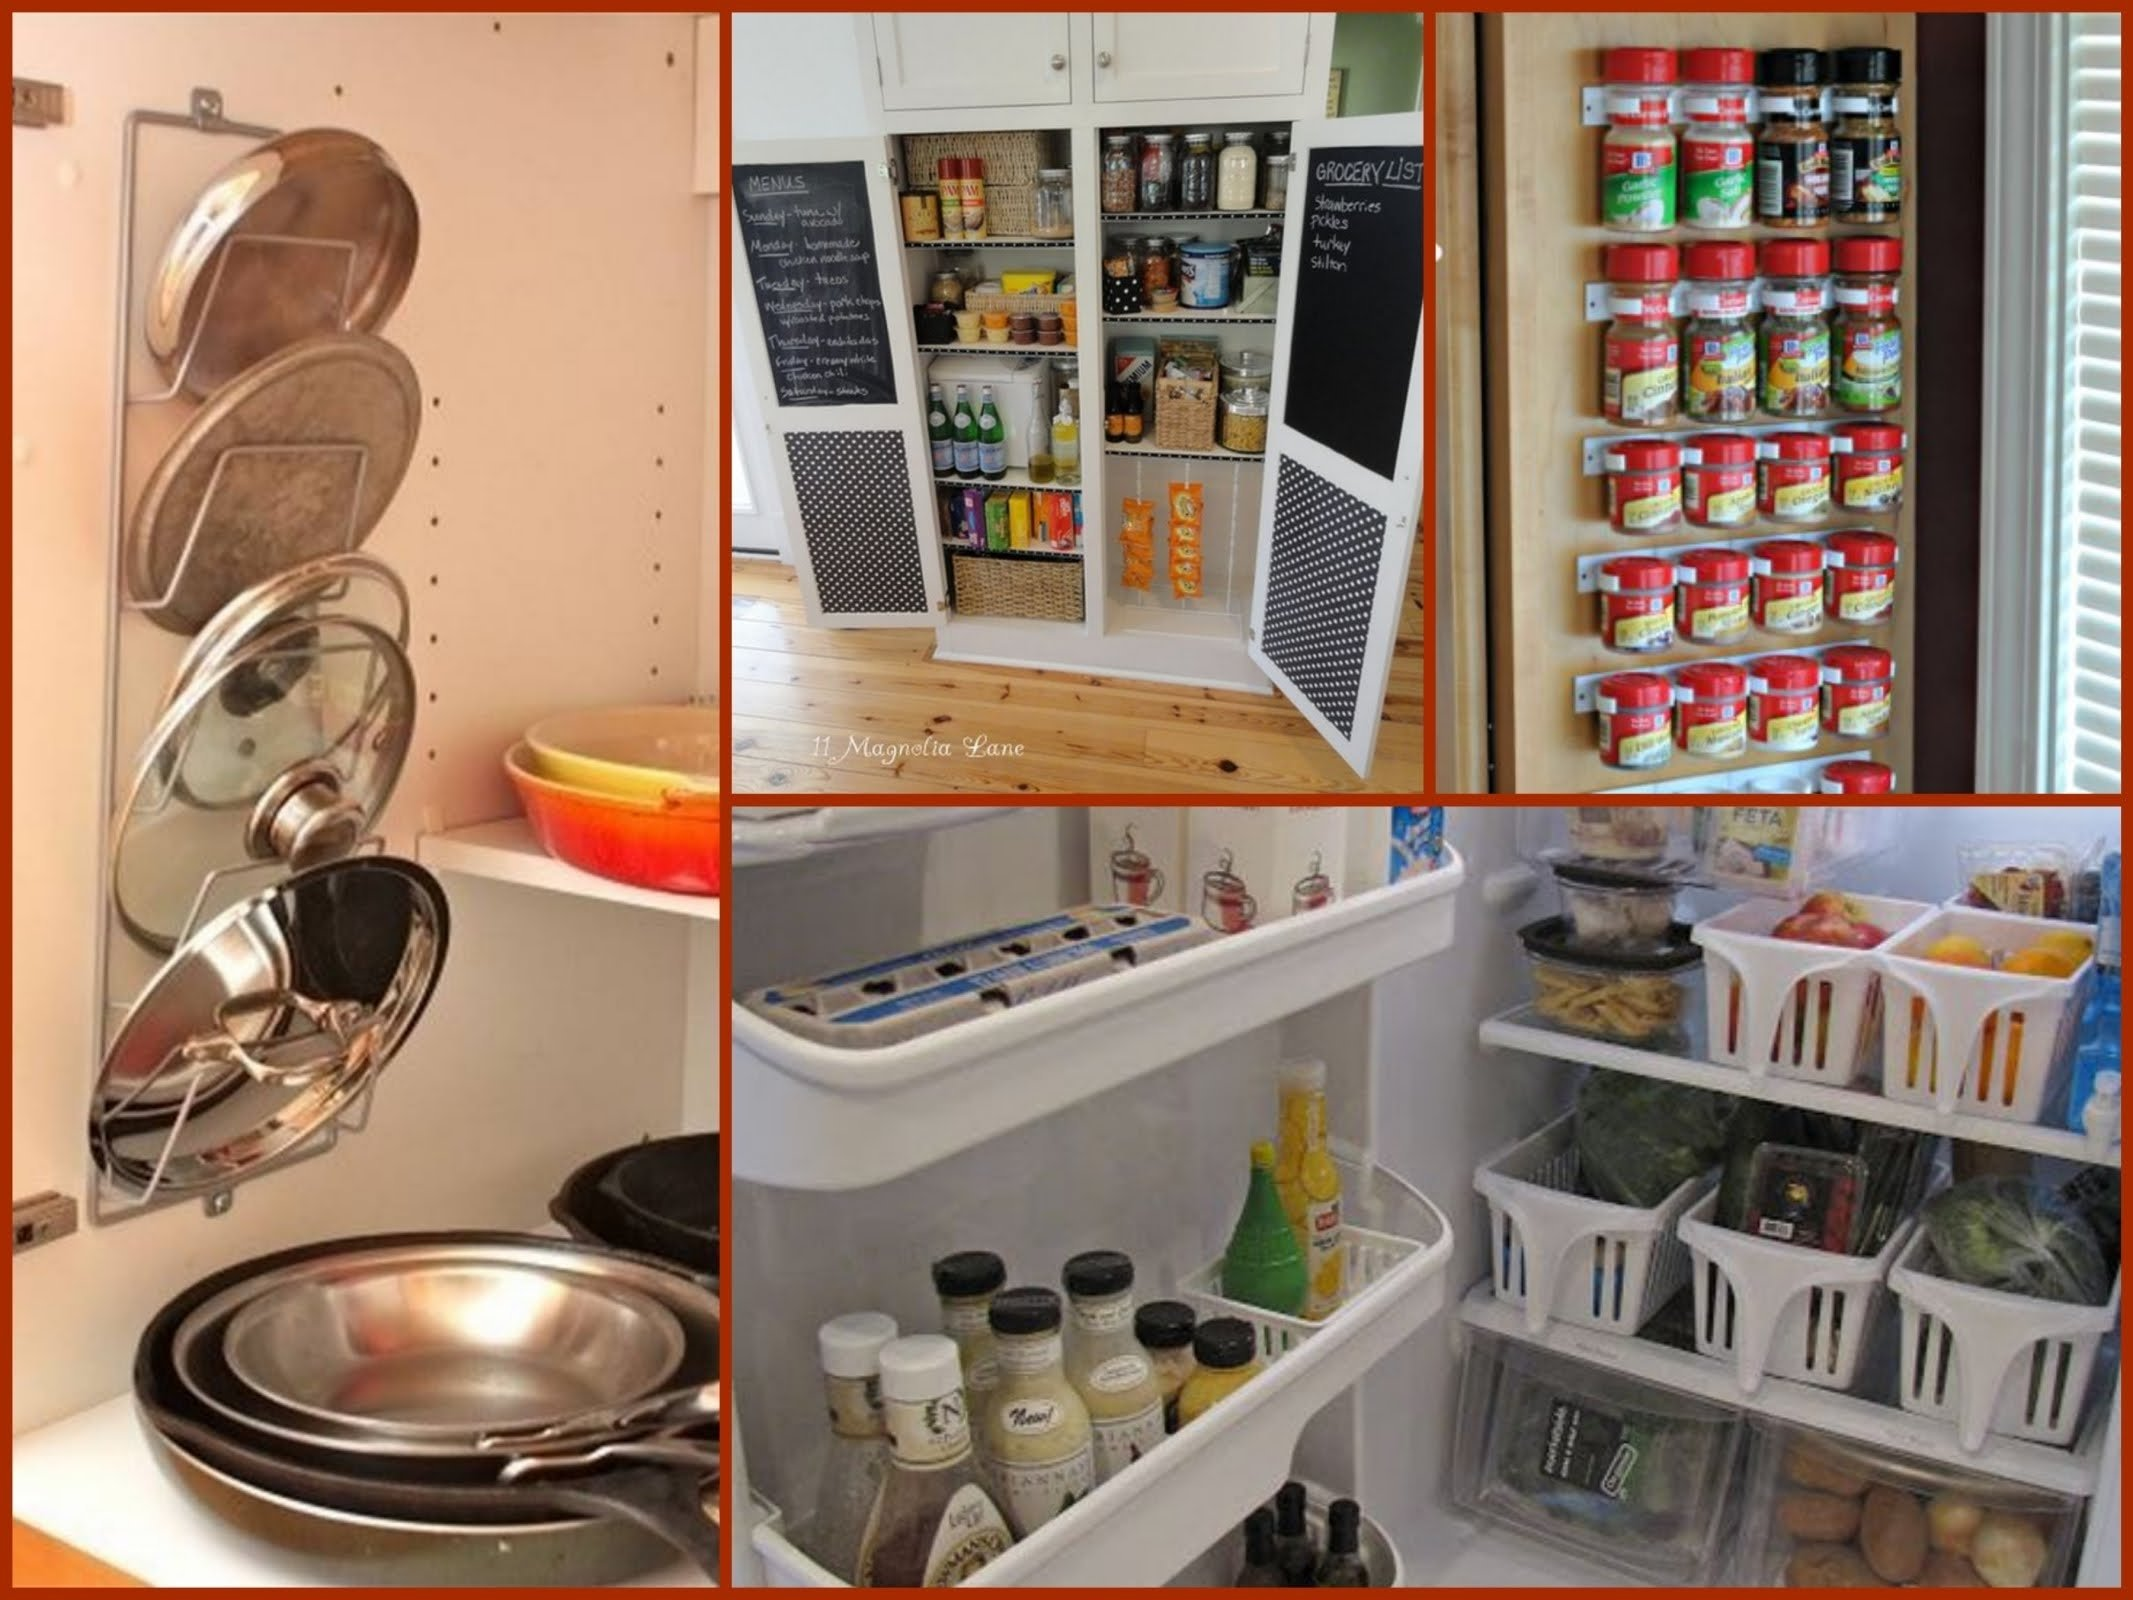 10 Most Popular Home Organization Tips And Ideas diy kitchen organization tips home organization ideas youtube 2020